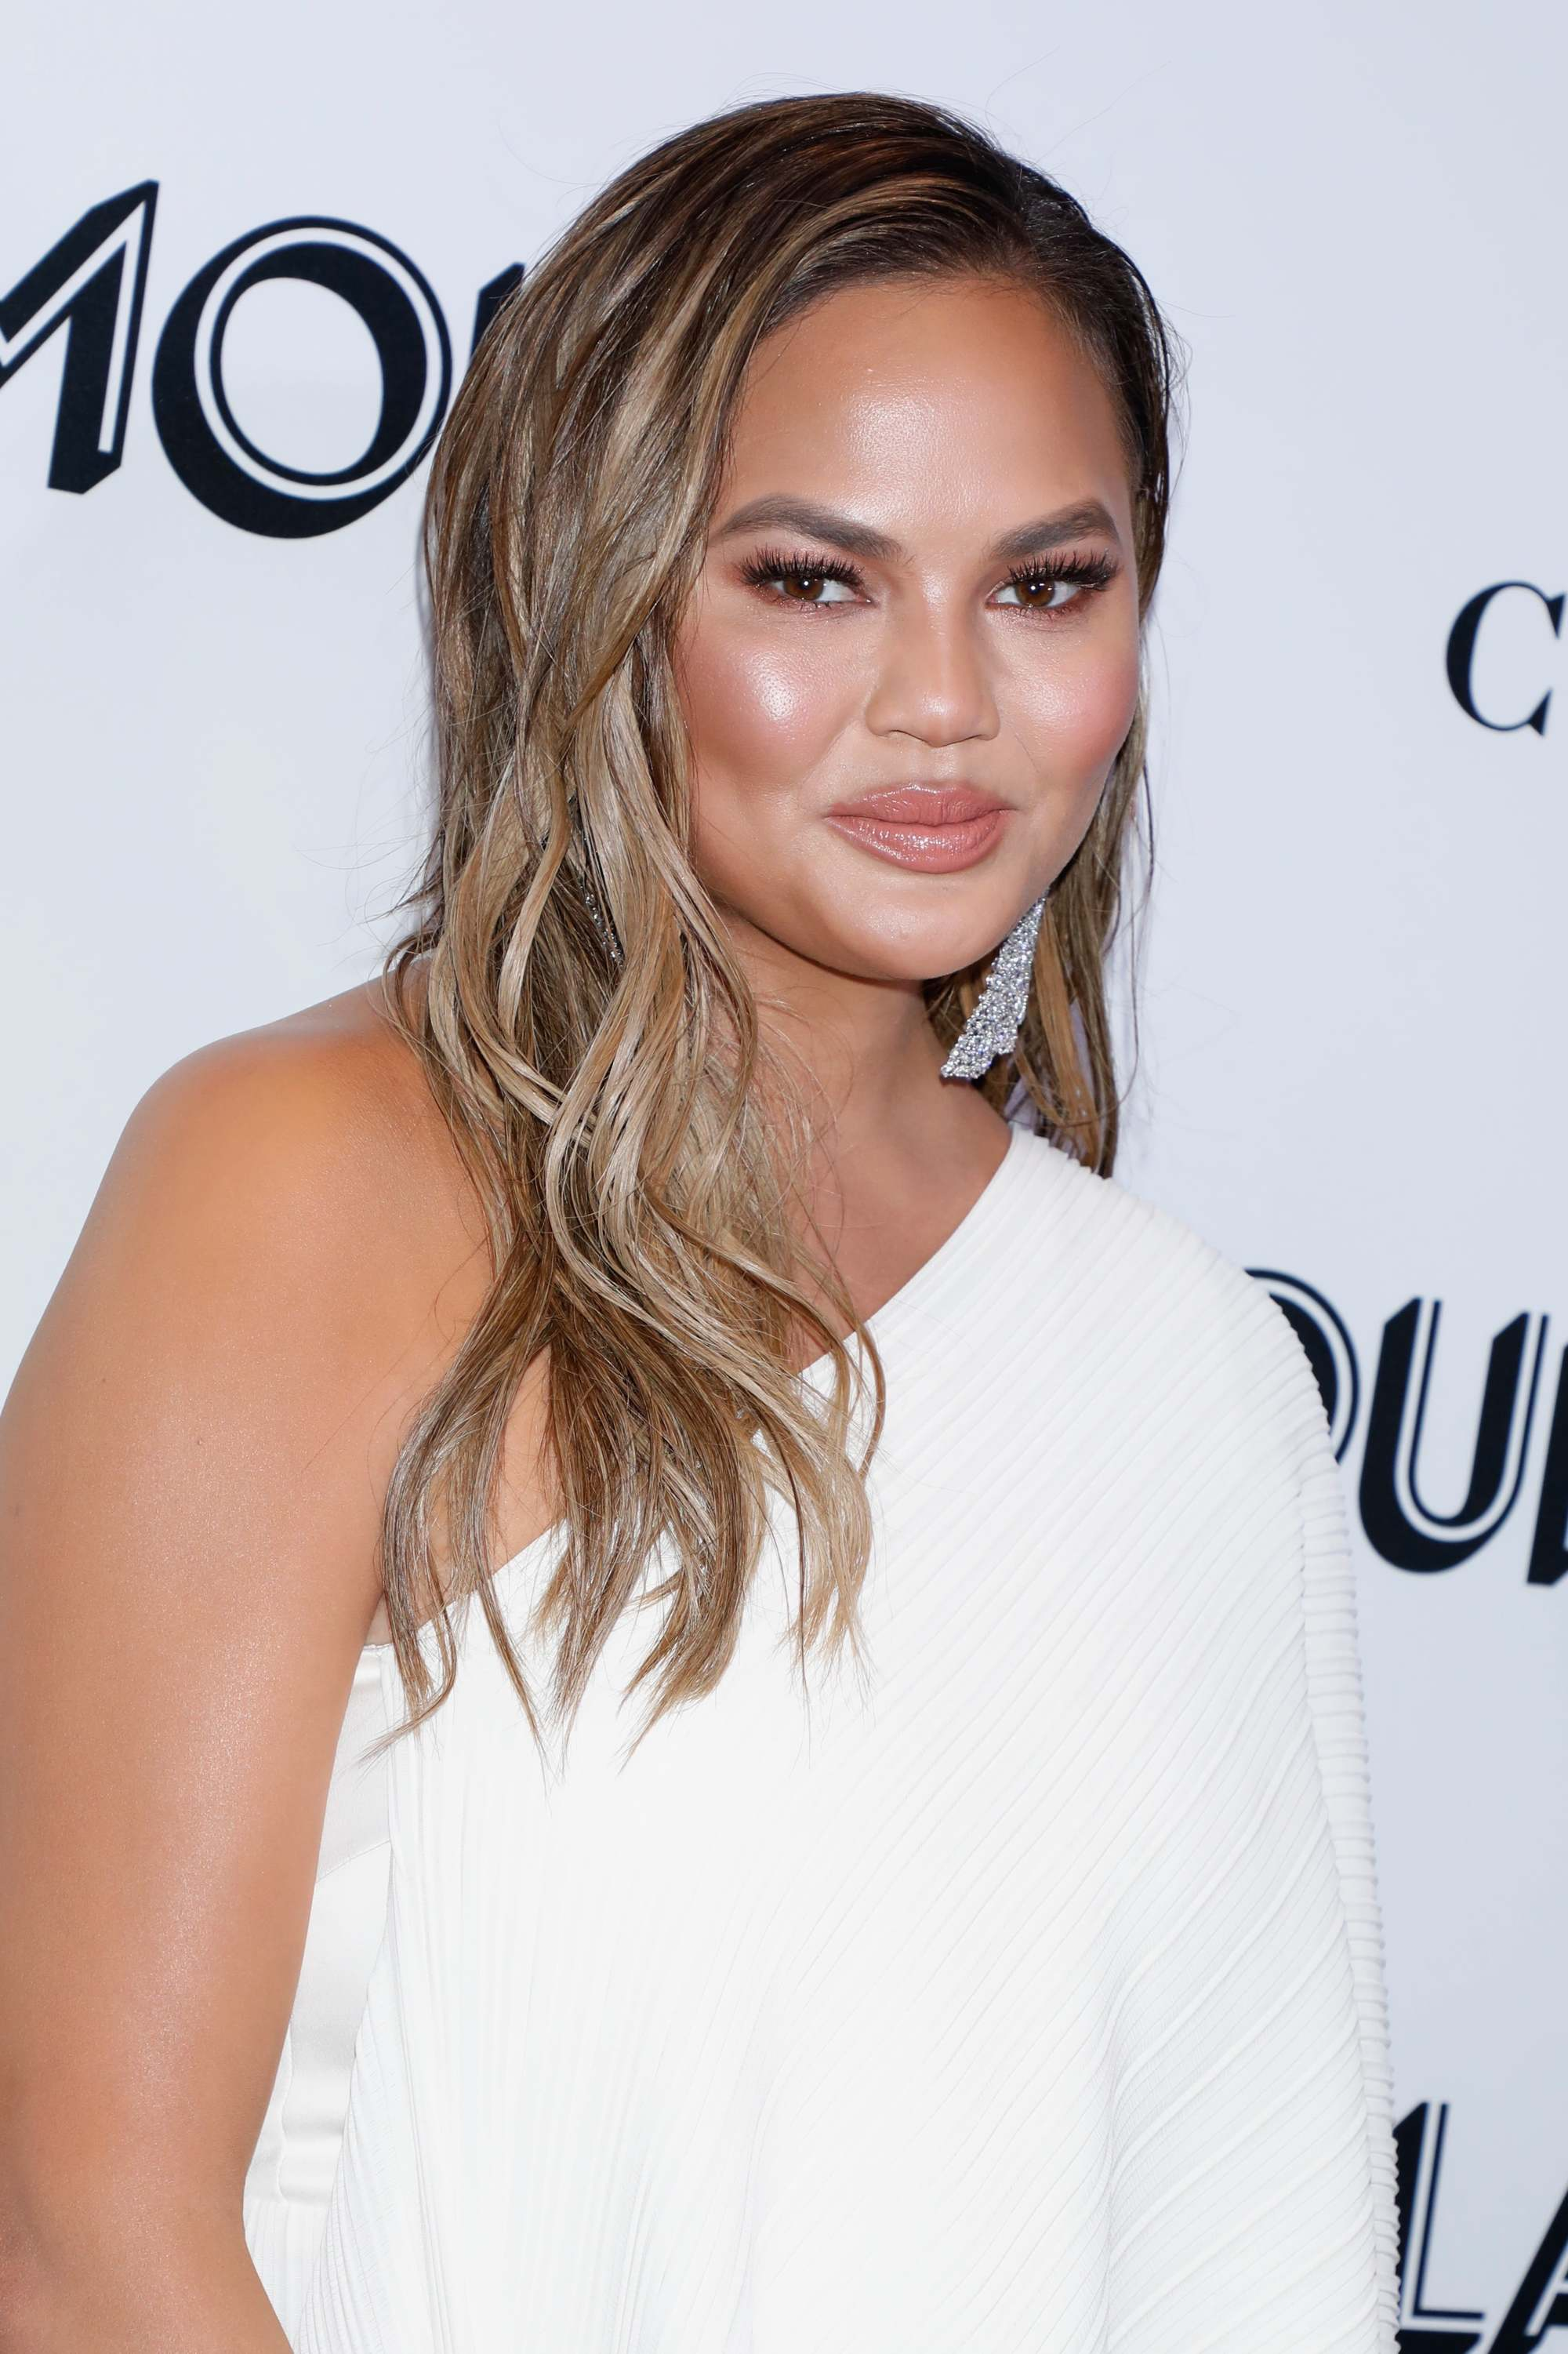 Highlights and lowlights: Chrissy Teigen with wavy medium length highlighted brown hair wearing a white one-shoulder dress.